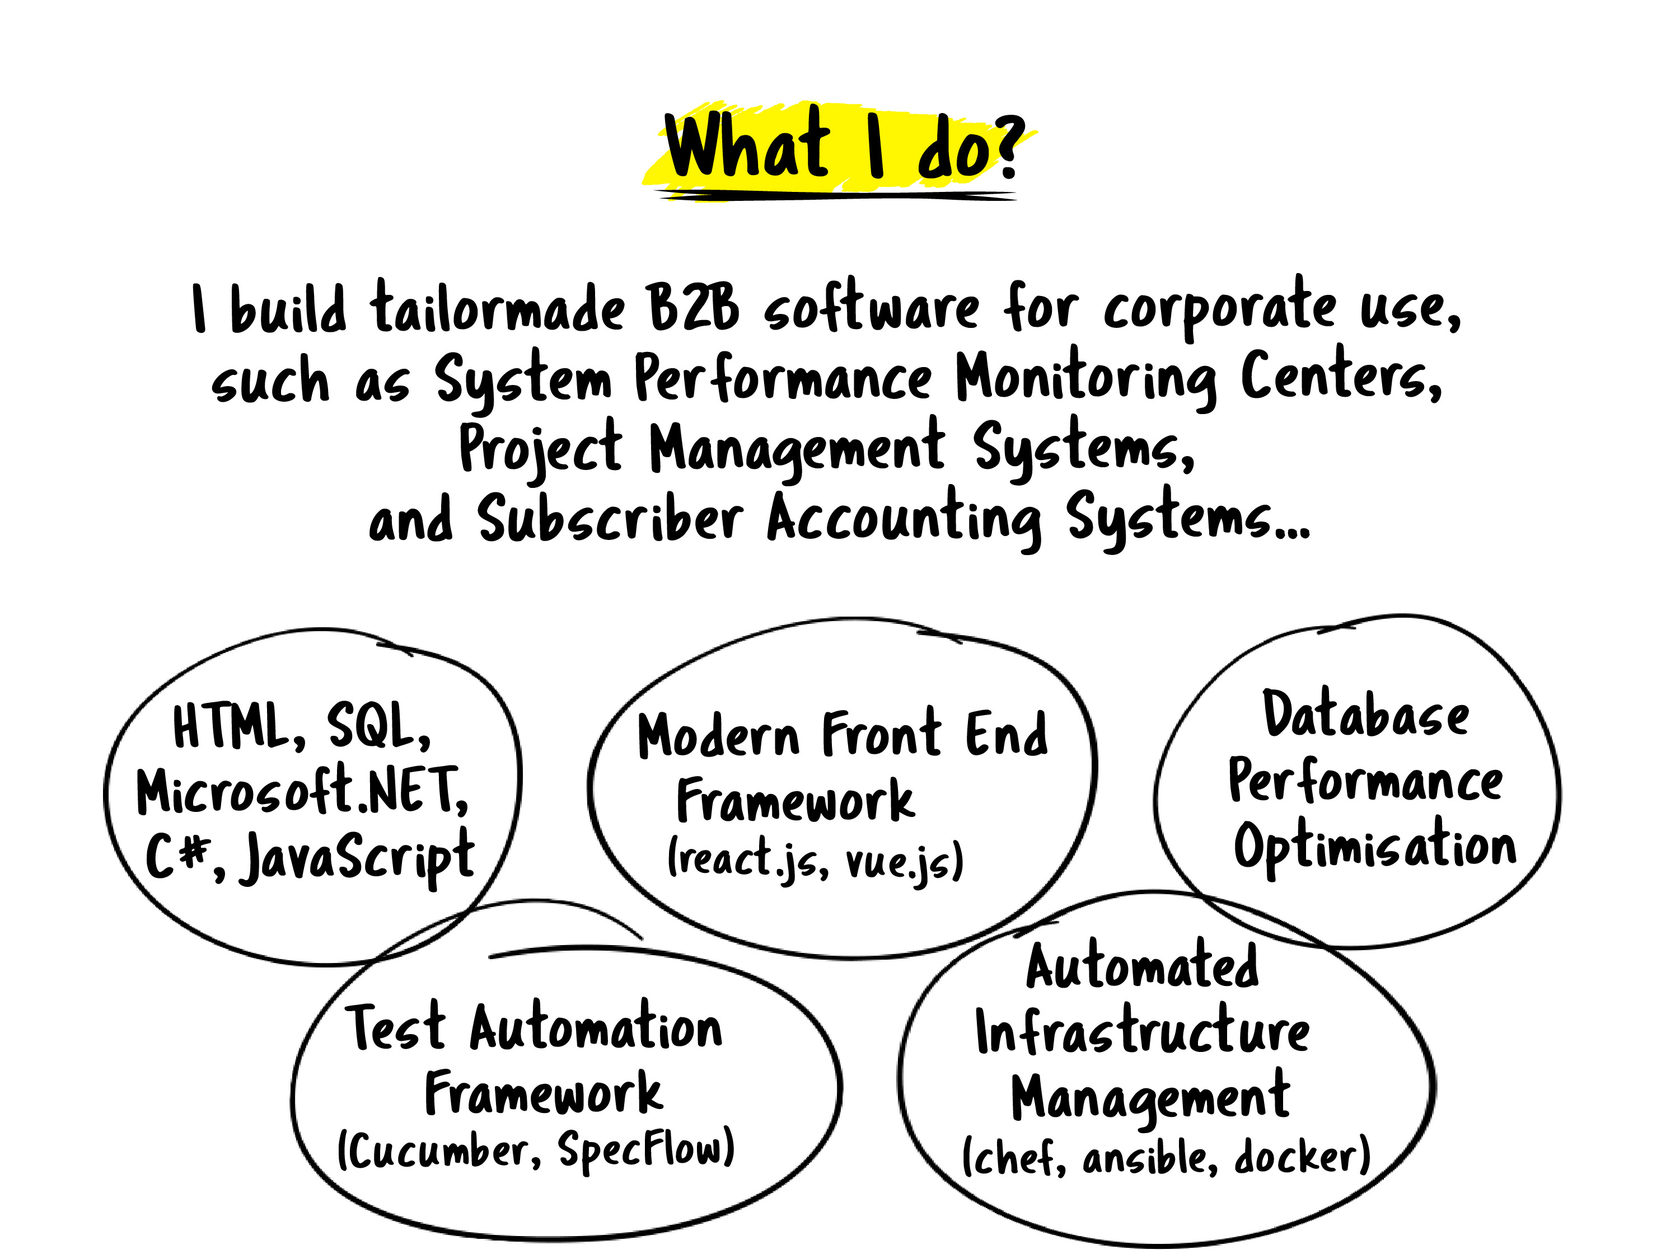 I build tailormade B2B software for corporate use, such as System Performance Monitoring Centers, Project Management Systems, and Subscriber Accounting Systems using HTML, SQL, Microsoft.NET, C#, JavaScript, Modern Front End Framework (react.j, vue.js), Test Automation Framework (Cucumber, SpecFlow), and Automated Infrastructure Management (chef, ansible, docker).